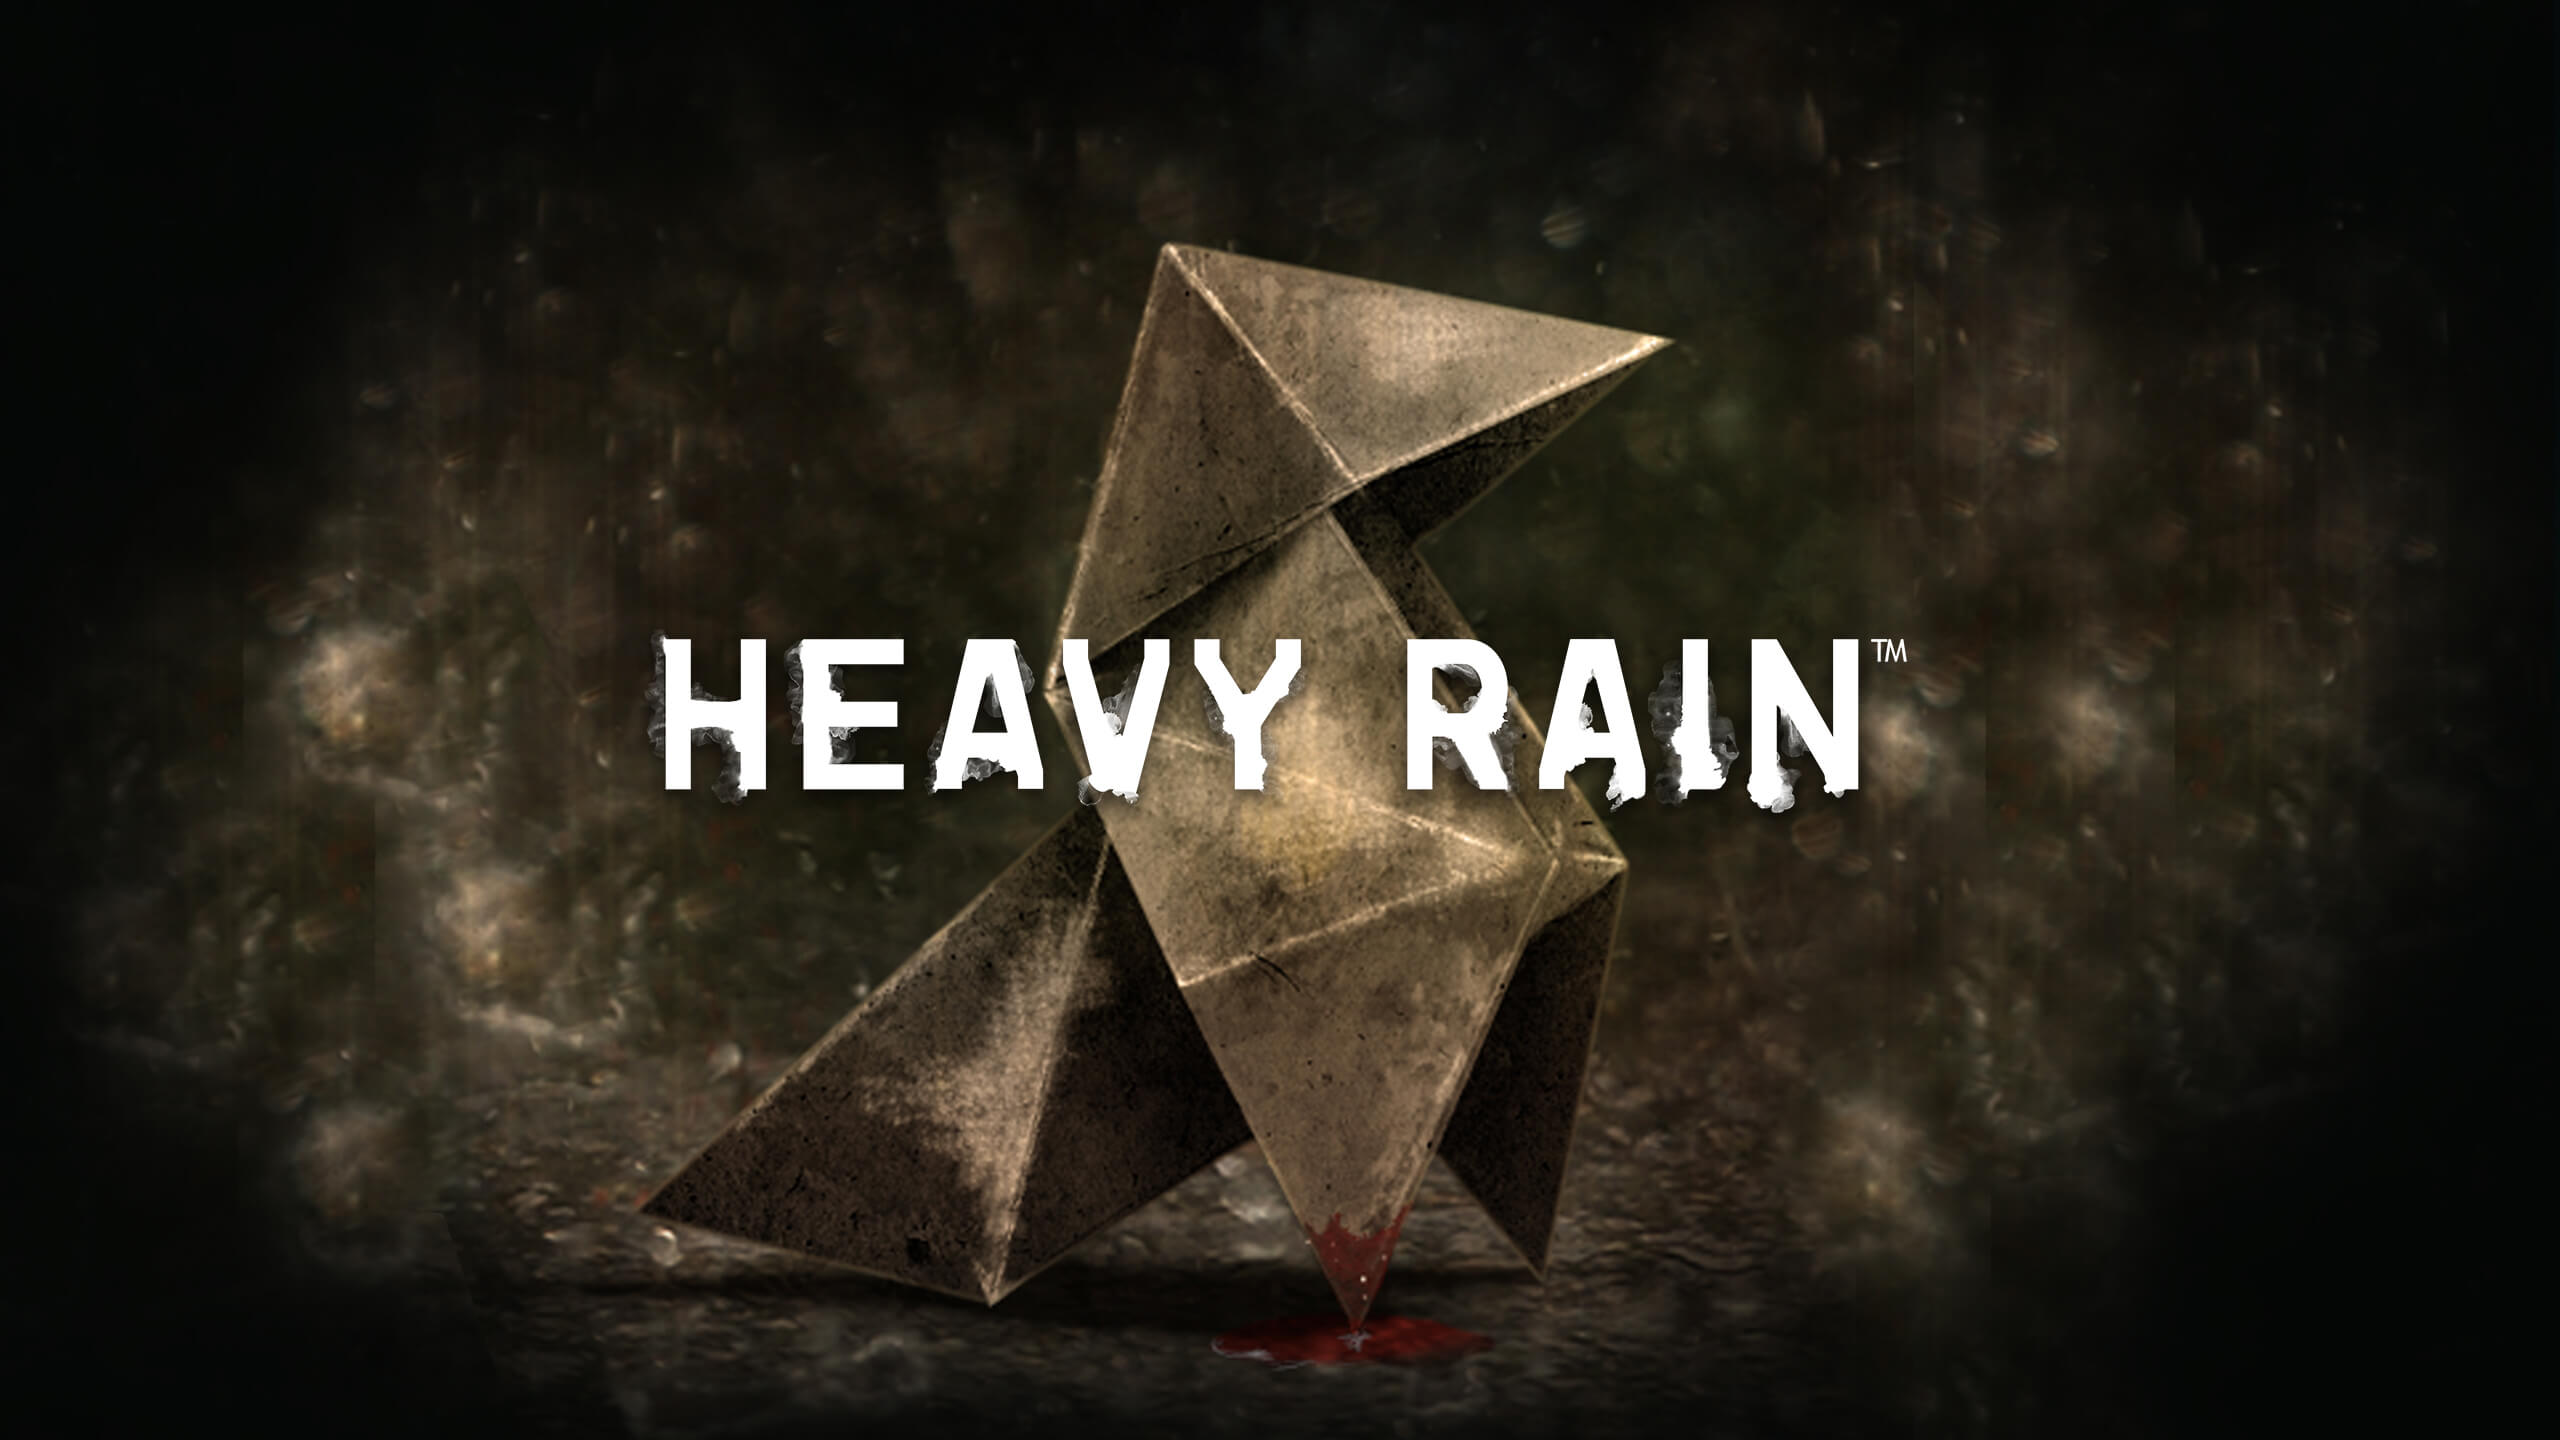 Heavy Rain is now available for pre-purchase! The hunt is on for The Origami Killer, and how this story ends is entirely up to you…